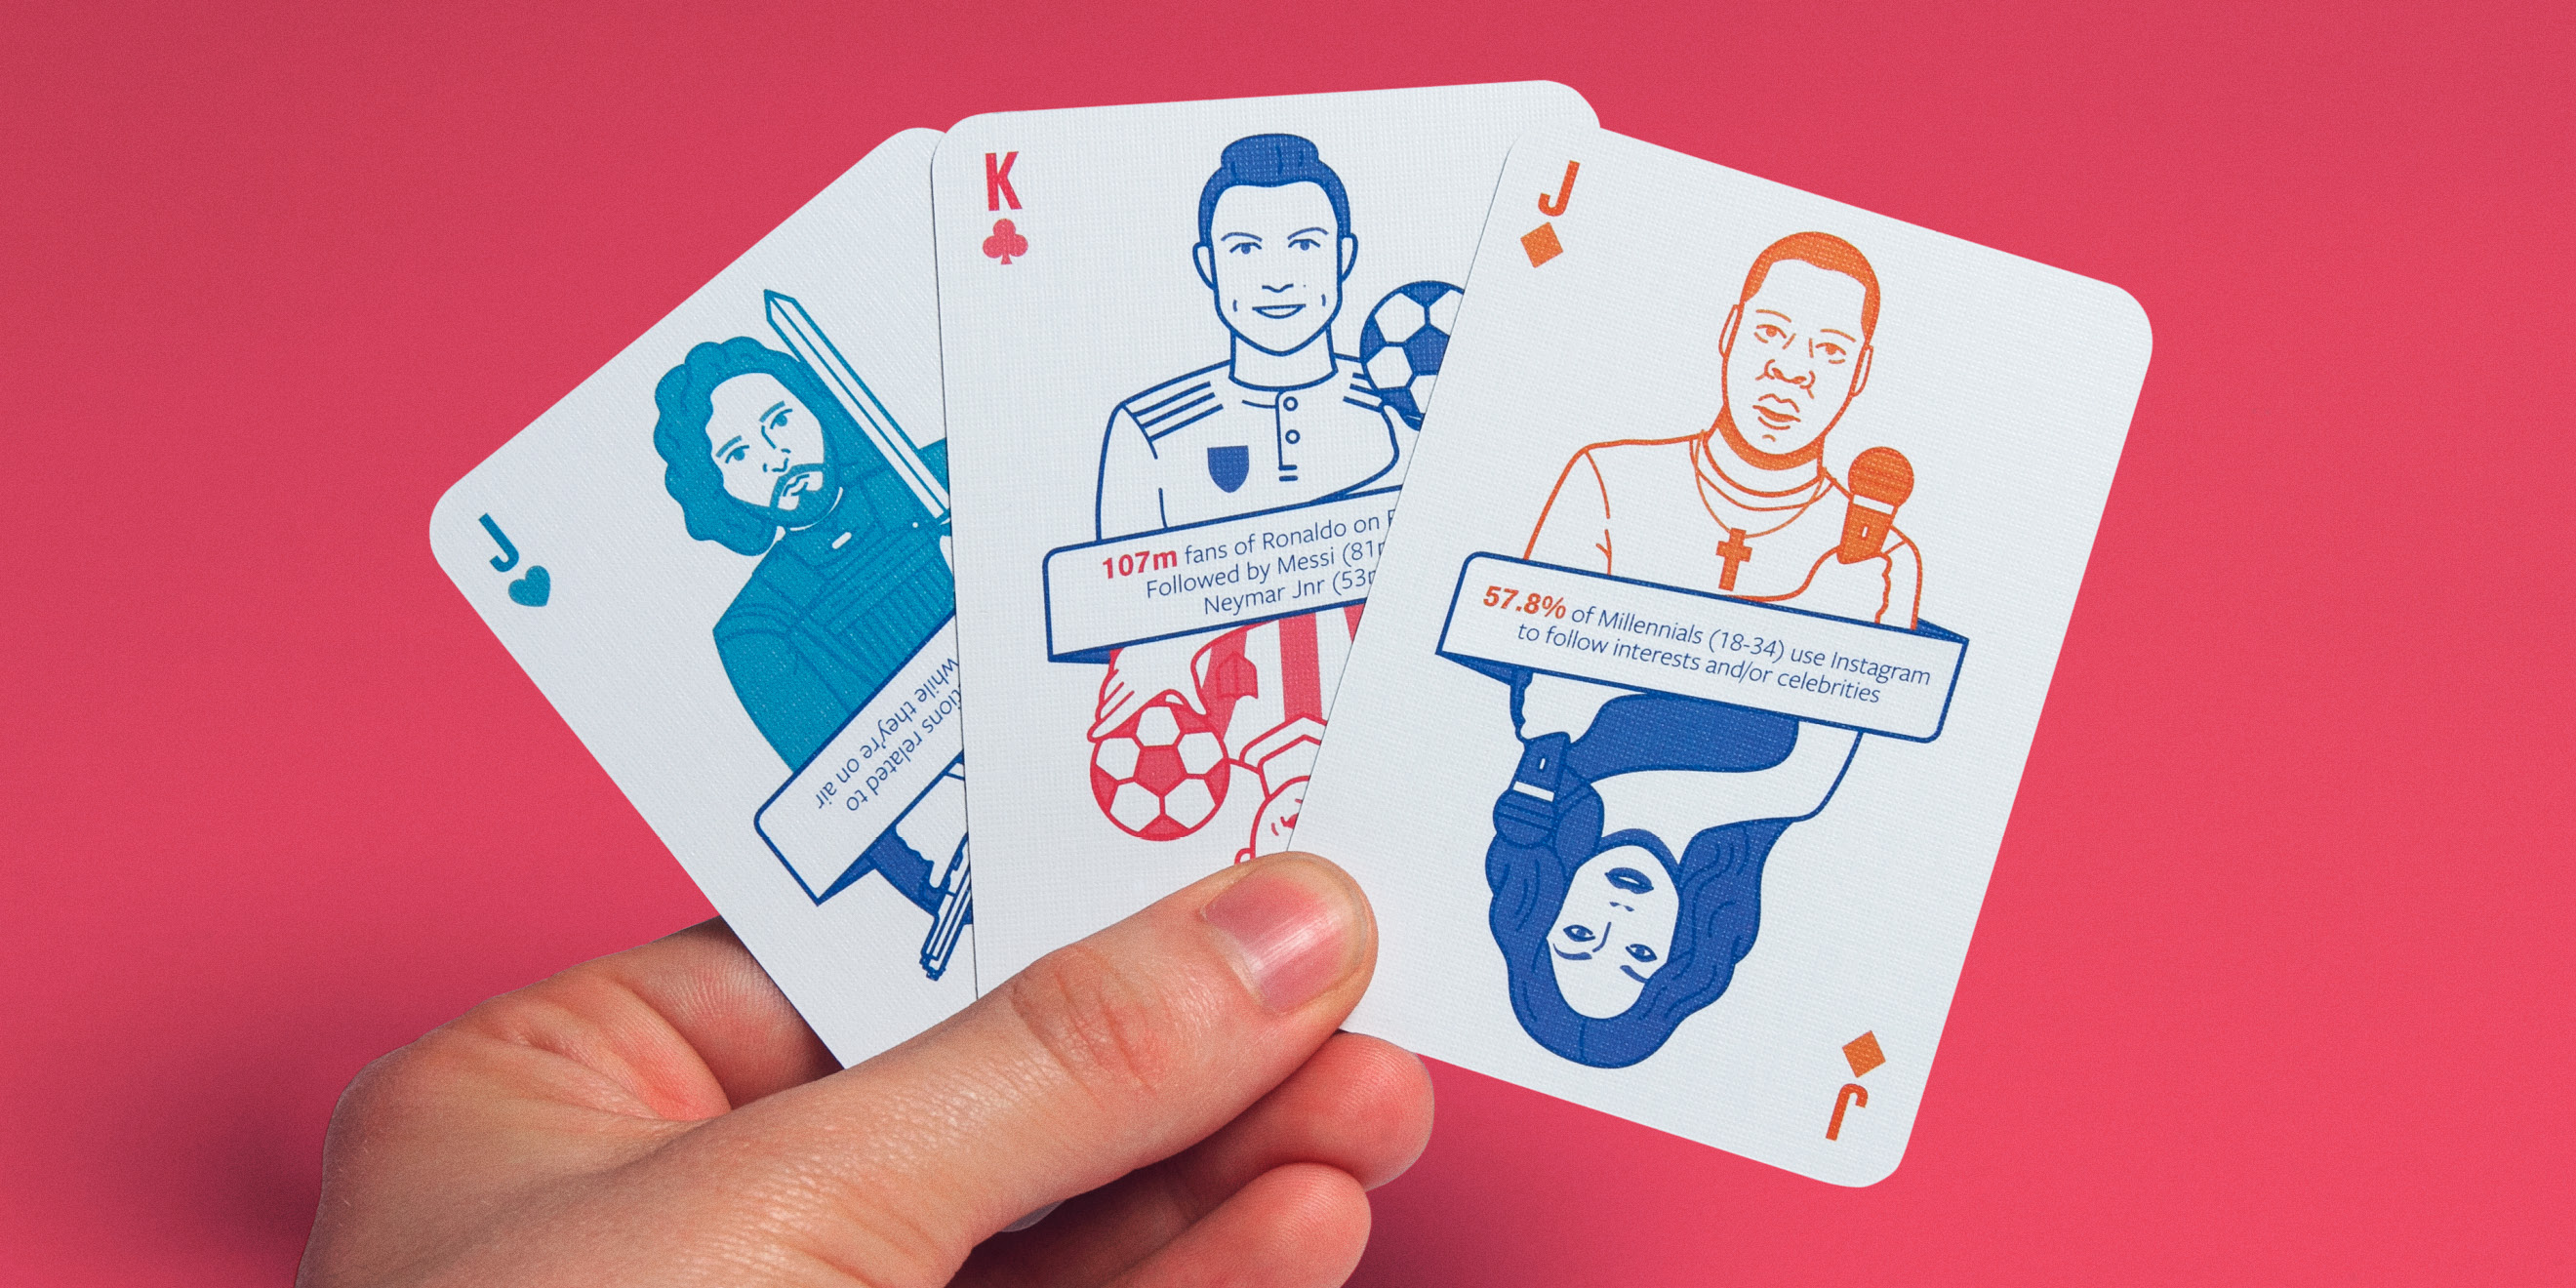 A hand of three Facebook B2B marketing insights playing cards designed by Human After All